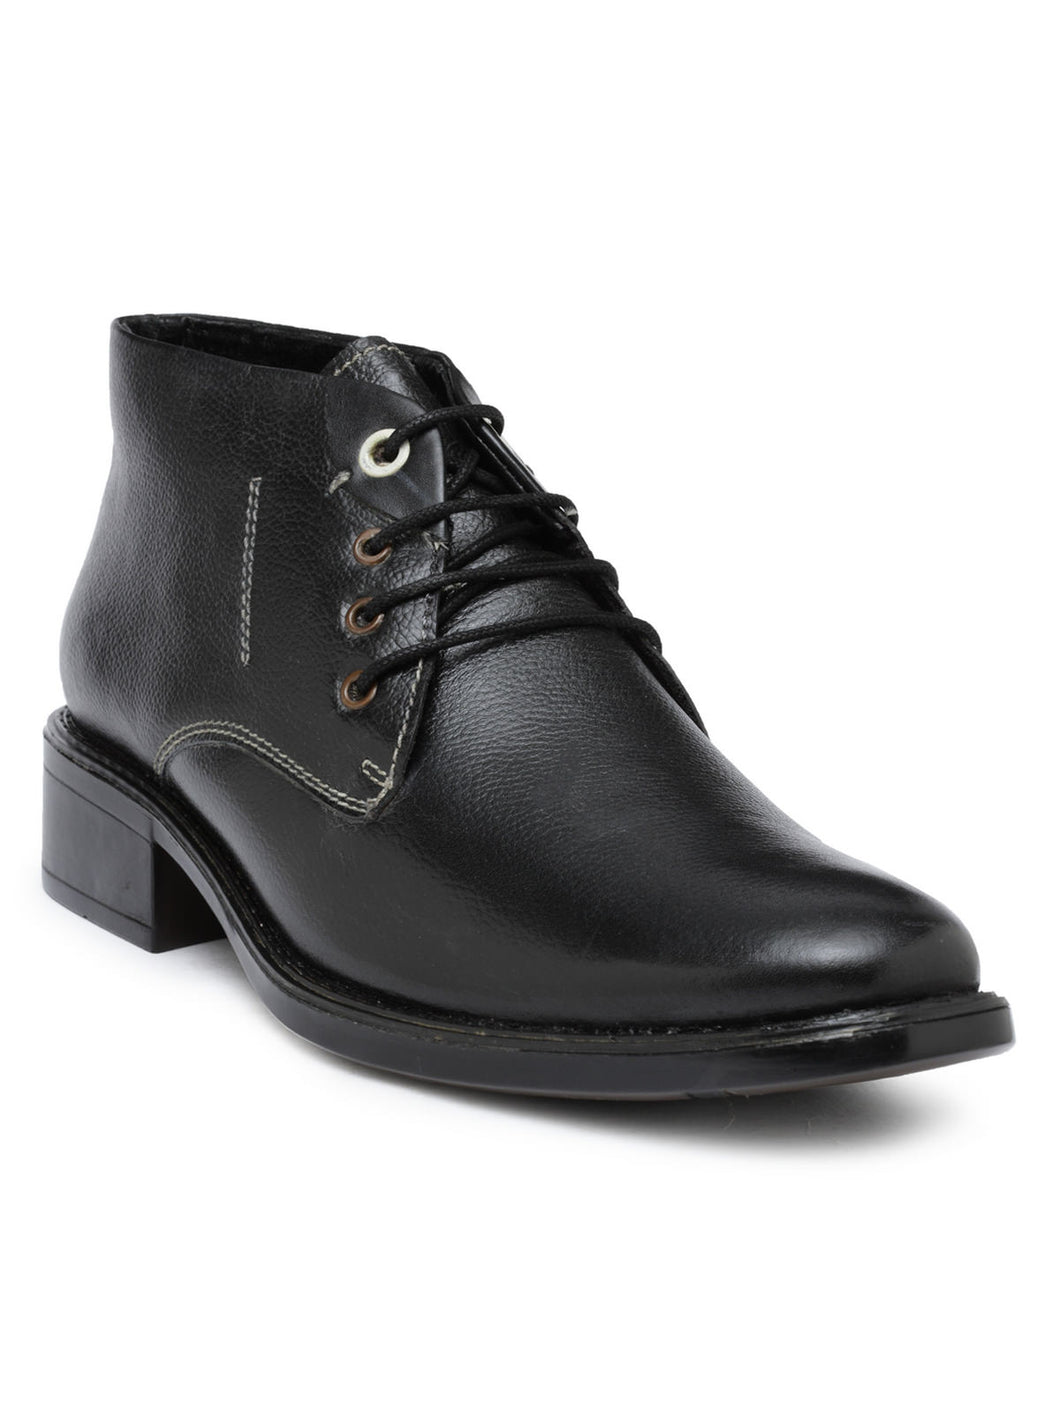 Teakwood Leather Black Casual Shoes